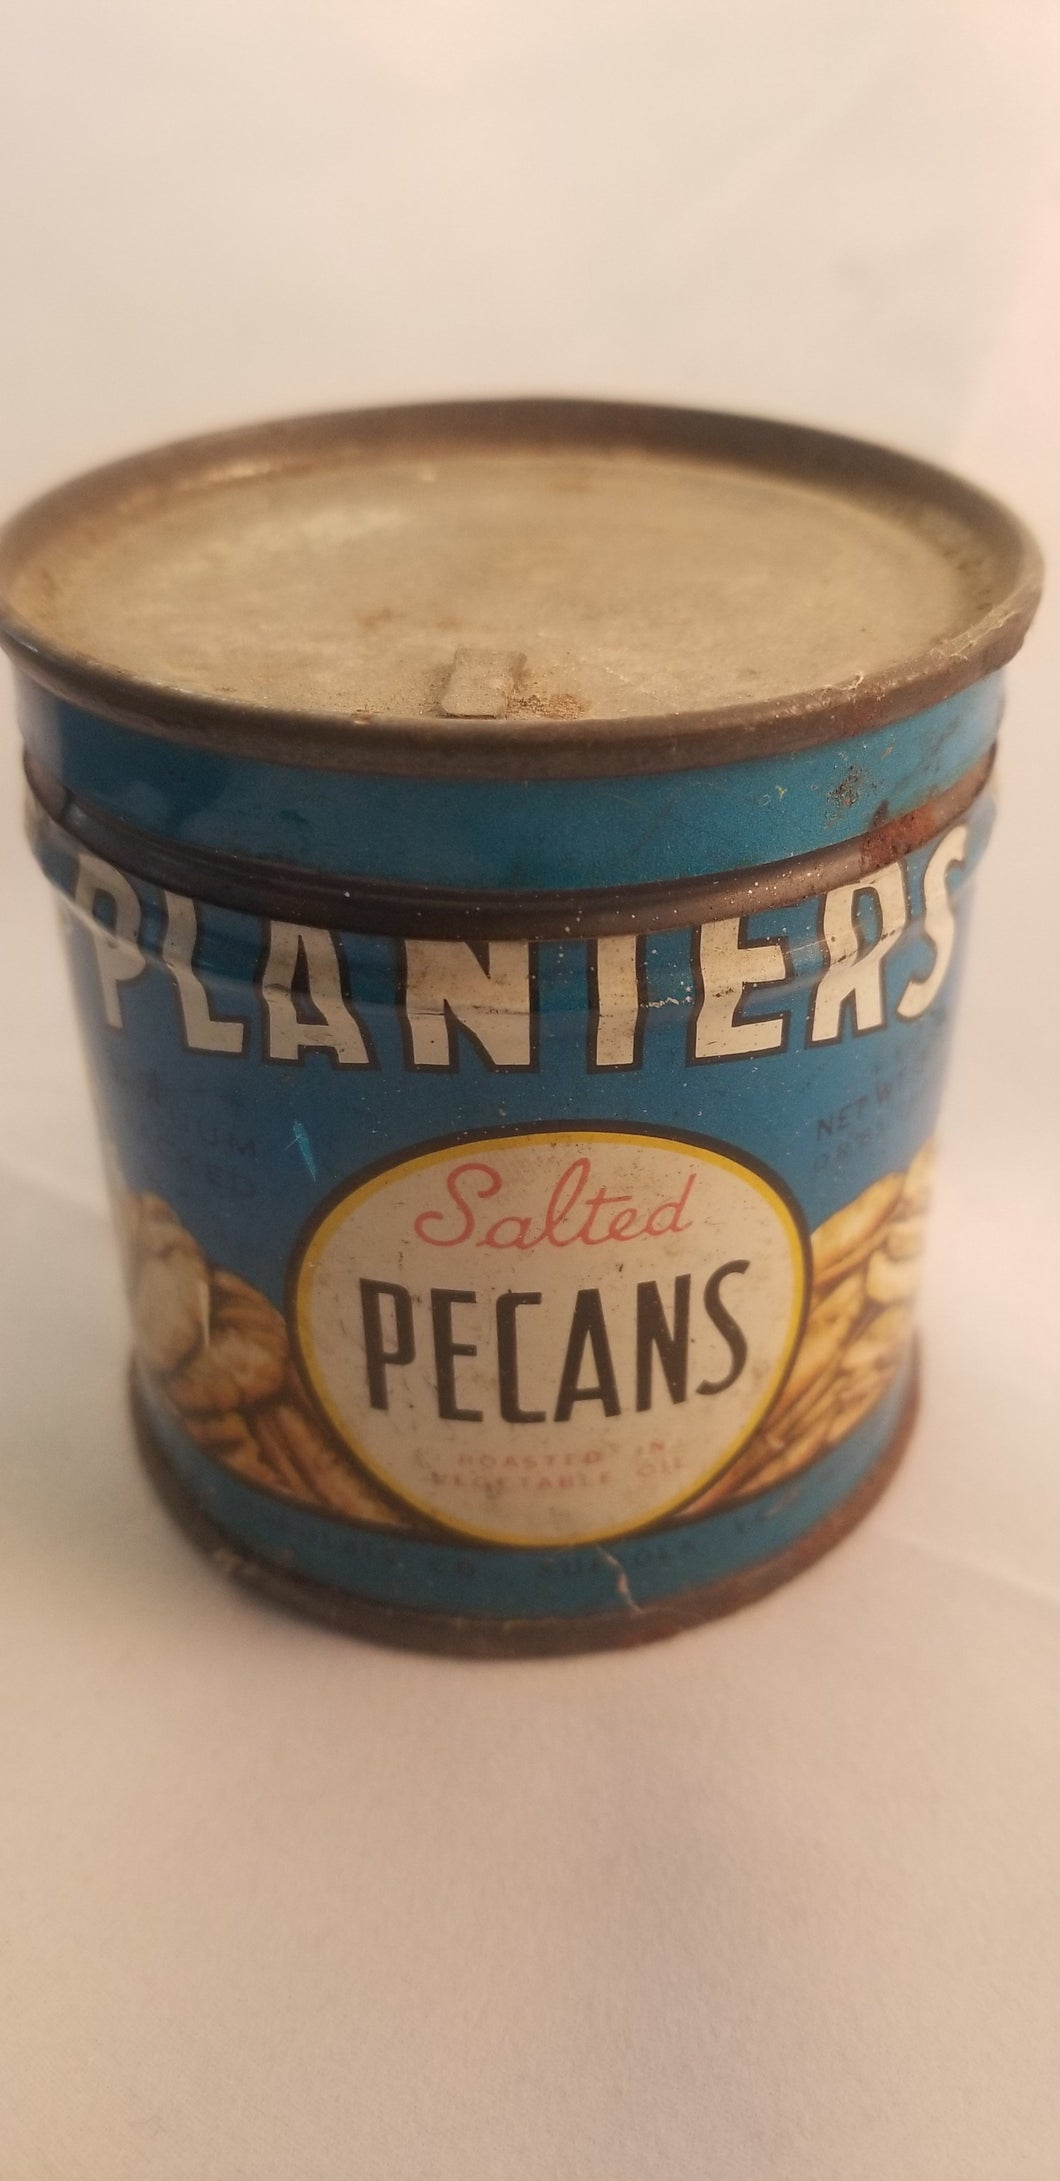 Planters Pecan can.  Never opened!